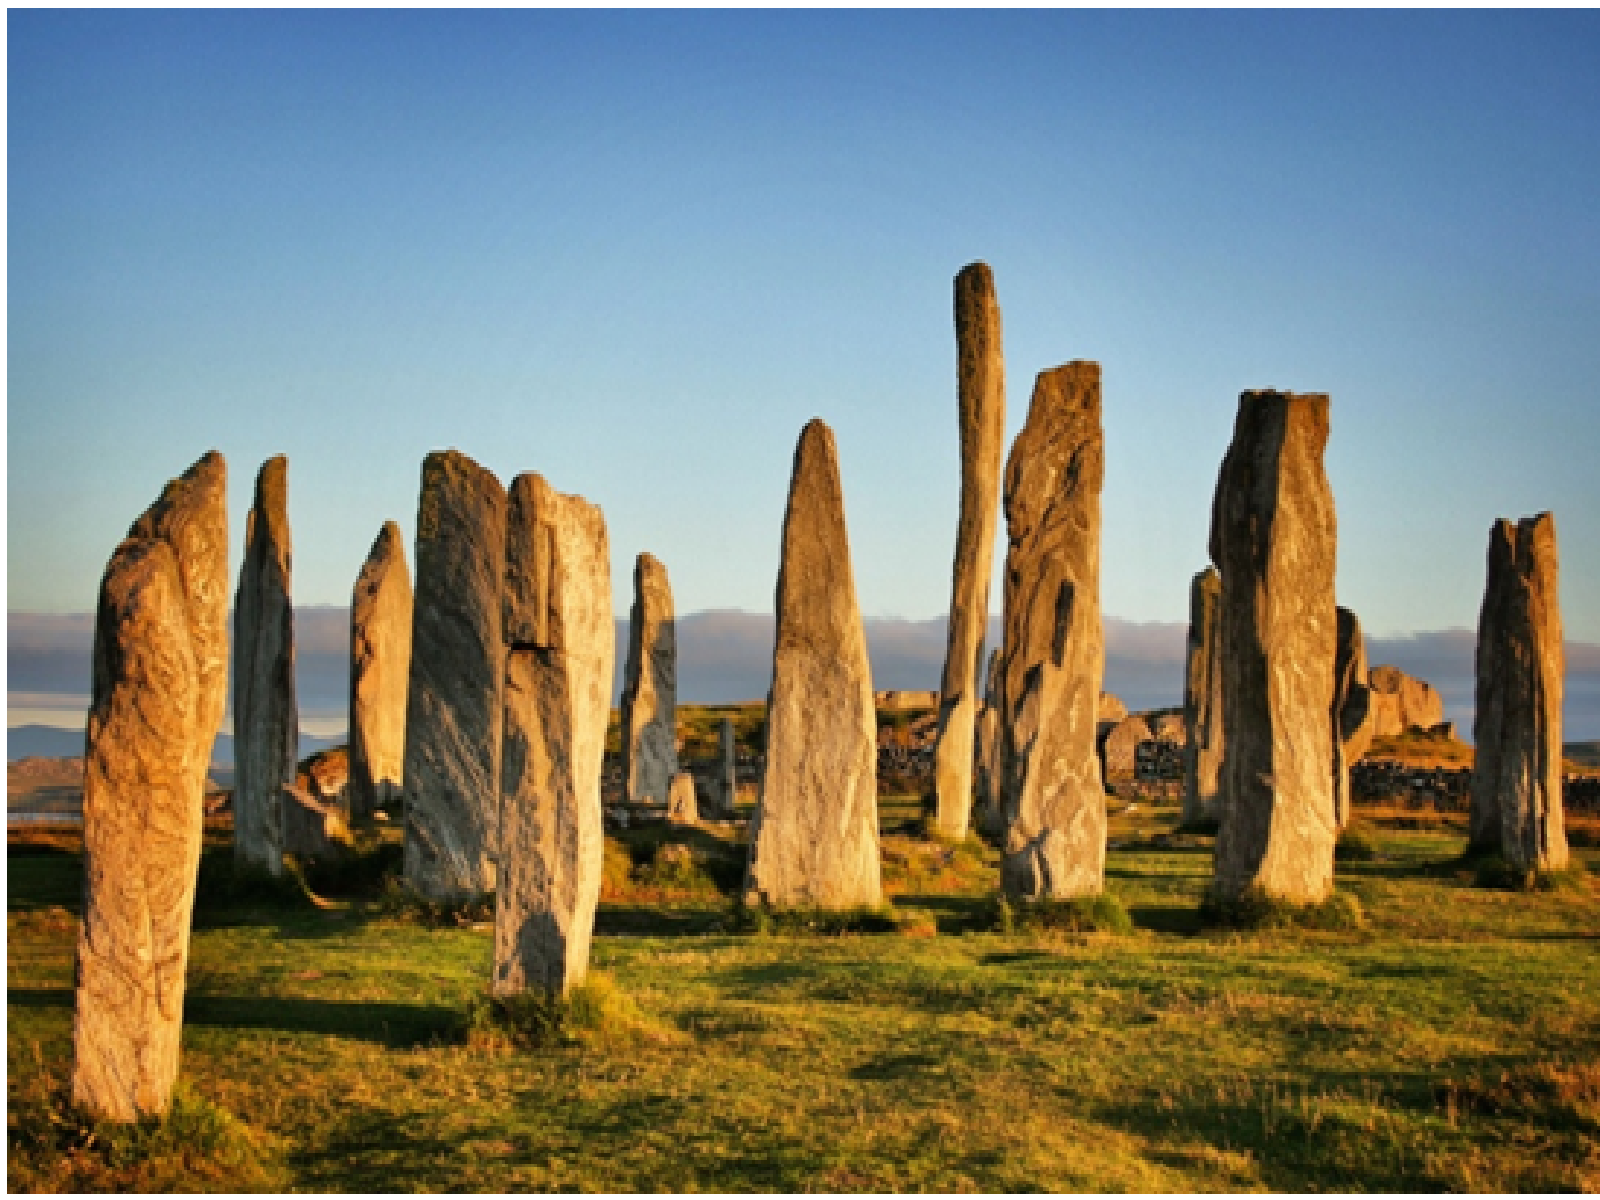 The Standing stone of Callanish